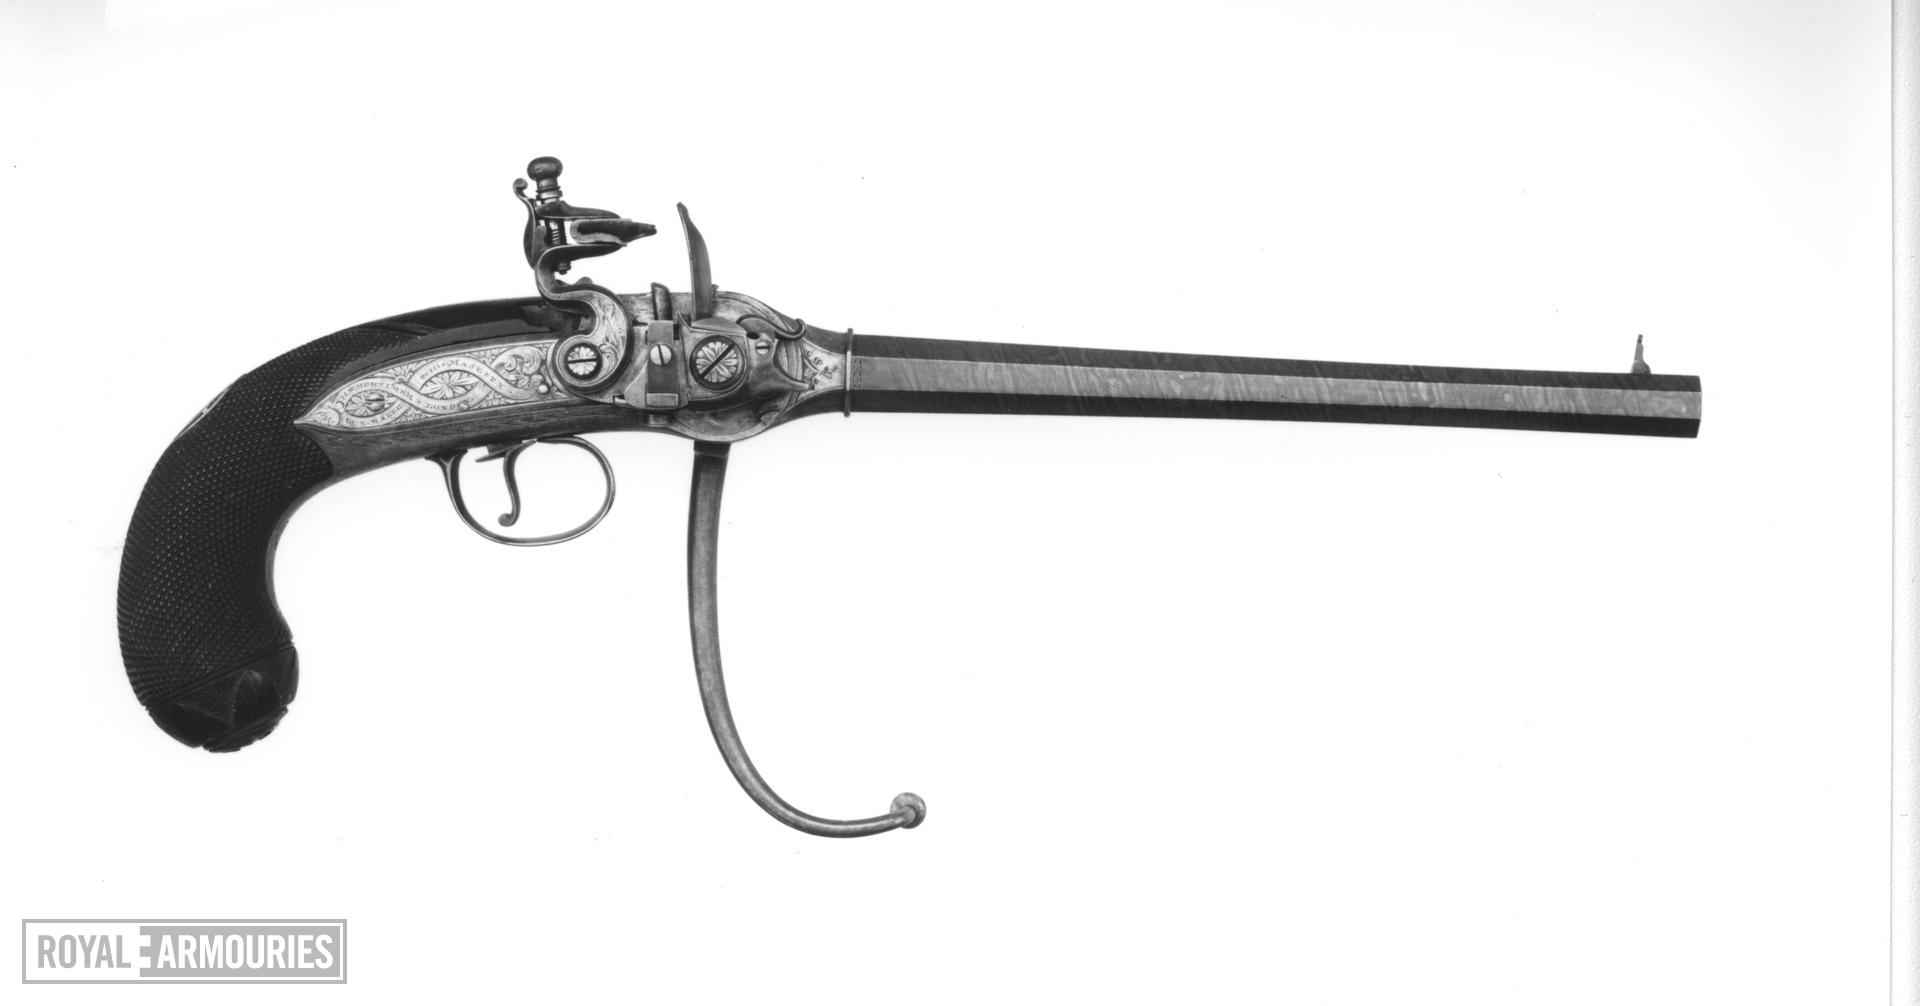 Flintlock breech-loading repeating pistol - Lorenzoni pistol Lorenzoni type seven-shot pistol by H.W. Mortimer Snr,